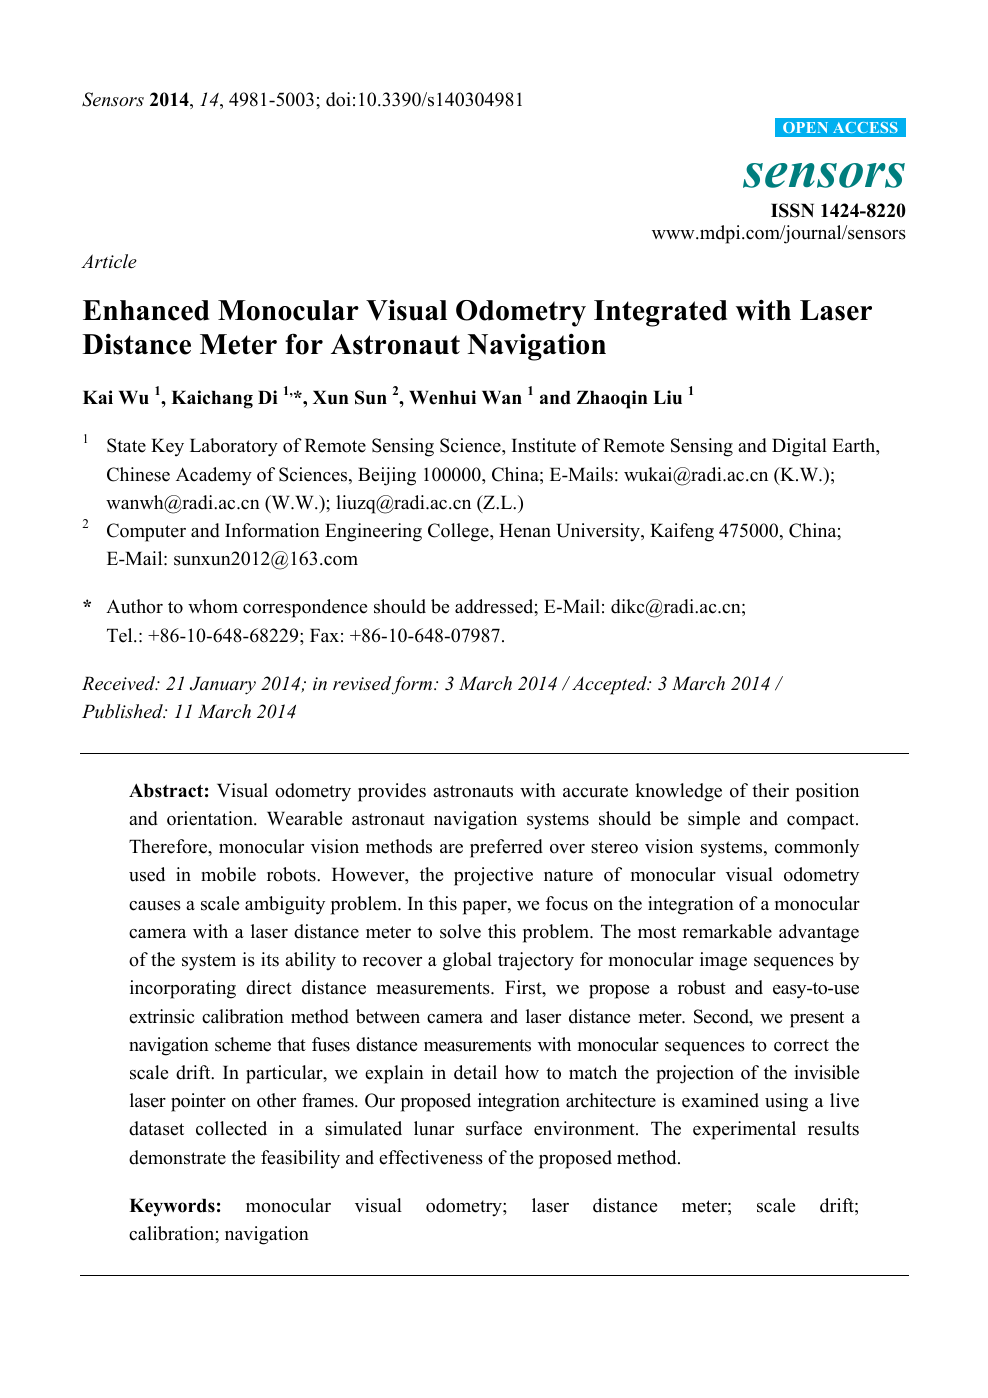 Enhanced Monocular Visual Odometry Integrated with Laser